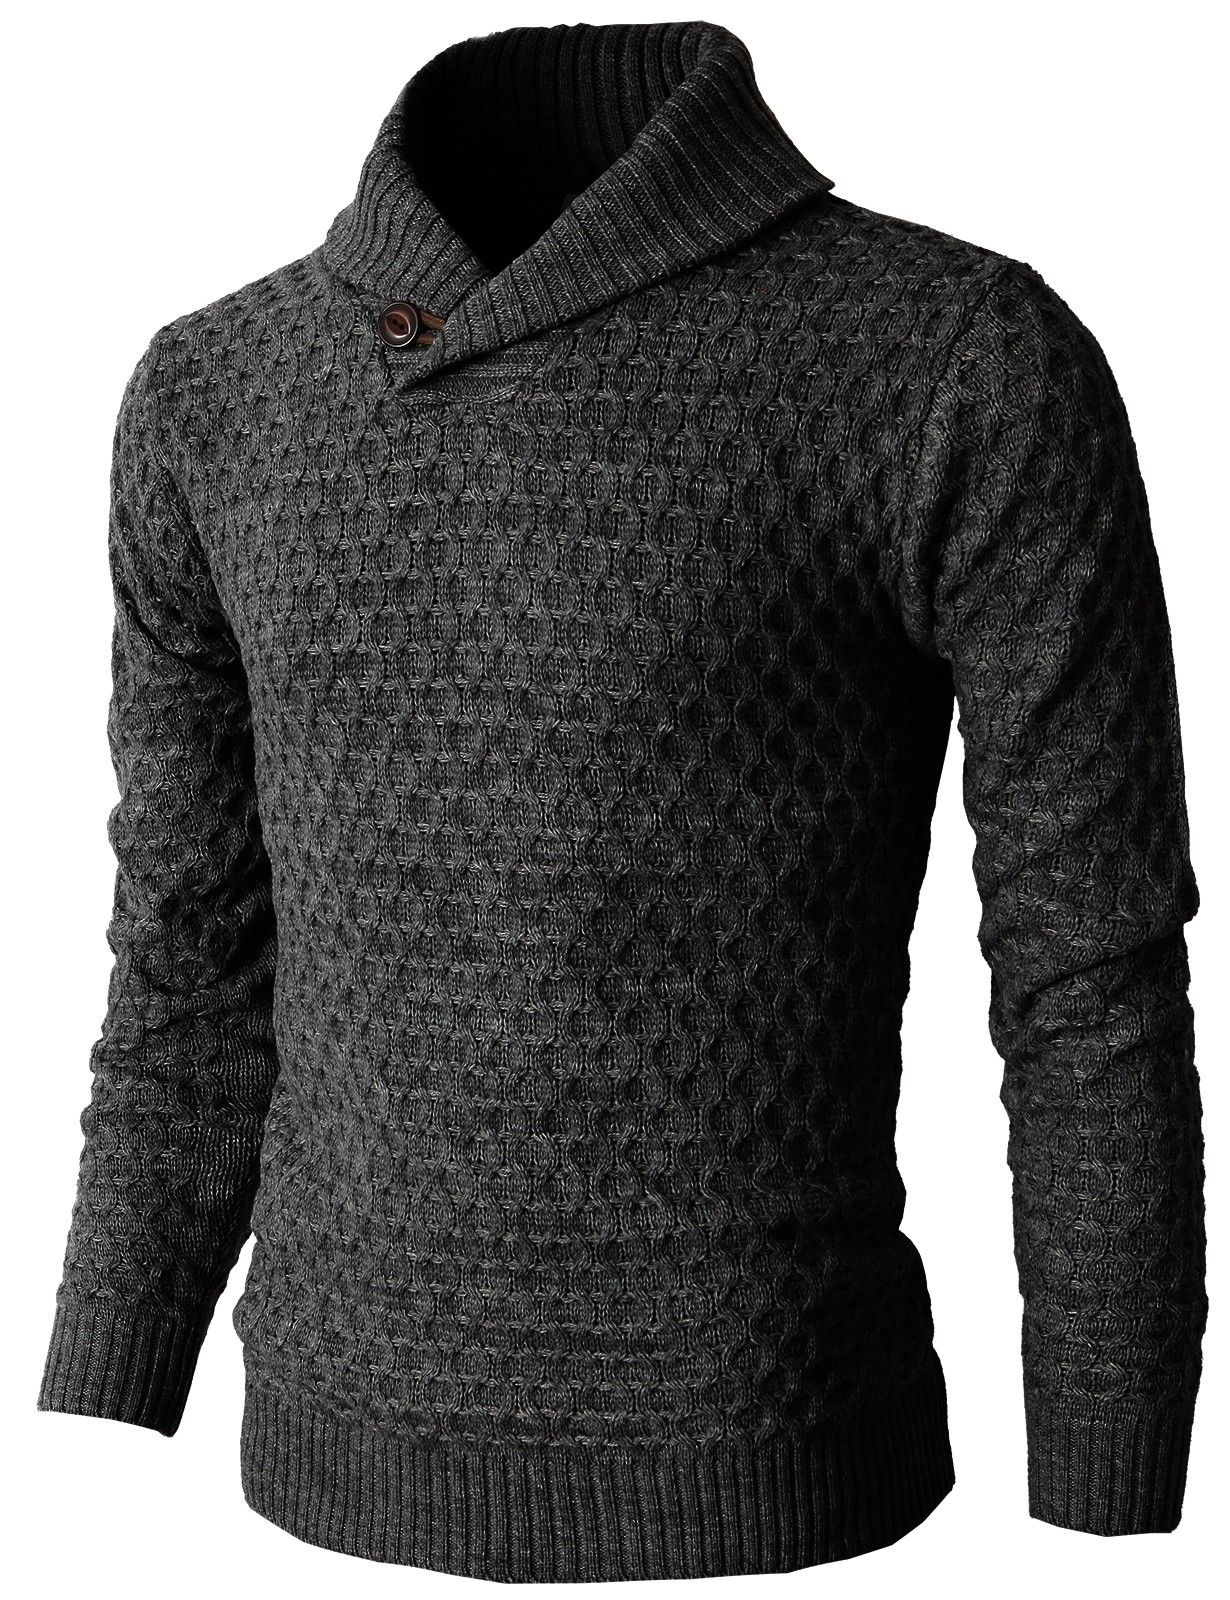 Mens Causal Knit Pullover Sweater With Hexagon Pattered Long ...